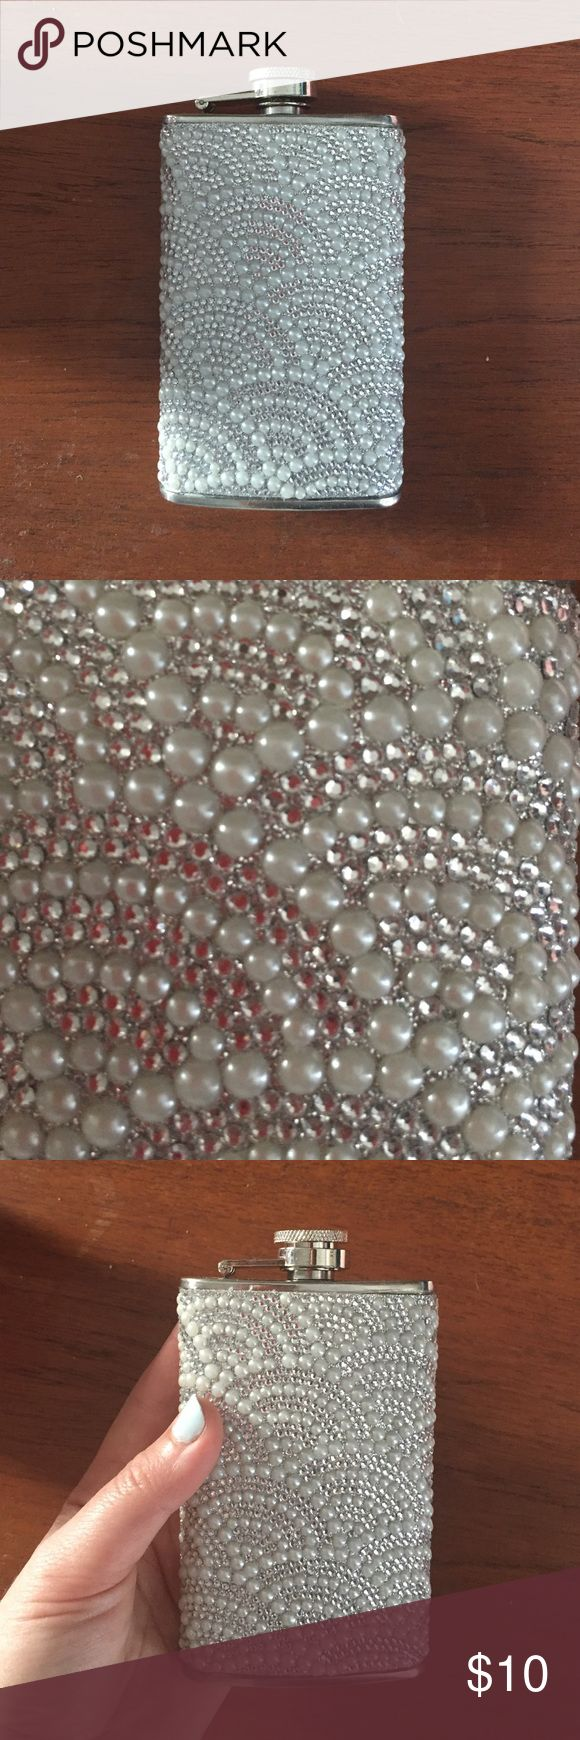 Bedazzled flask For the glam girl that likes to have a good time! Never used, fully covered in crystals and faux pearls, stainless steal 5oz flask. **MUST BE 21 TO PURCHASE ** Accessories